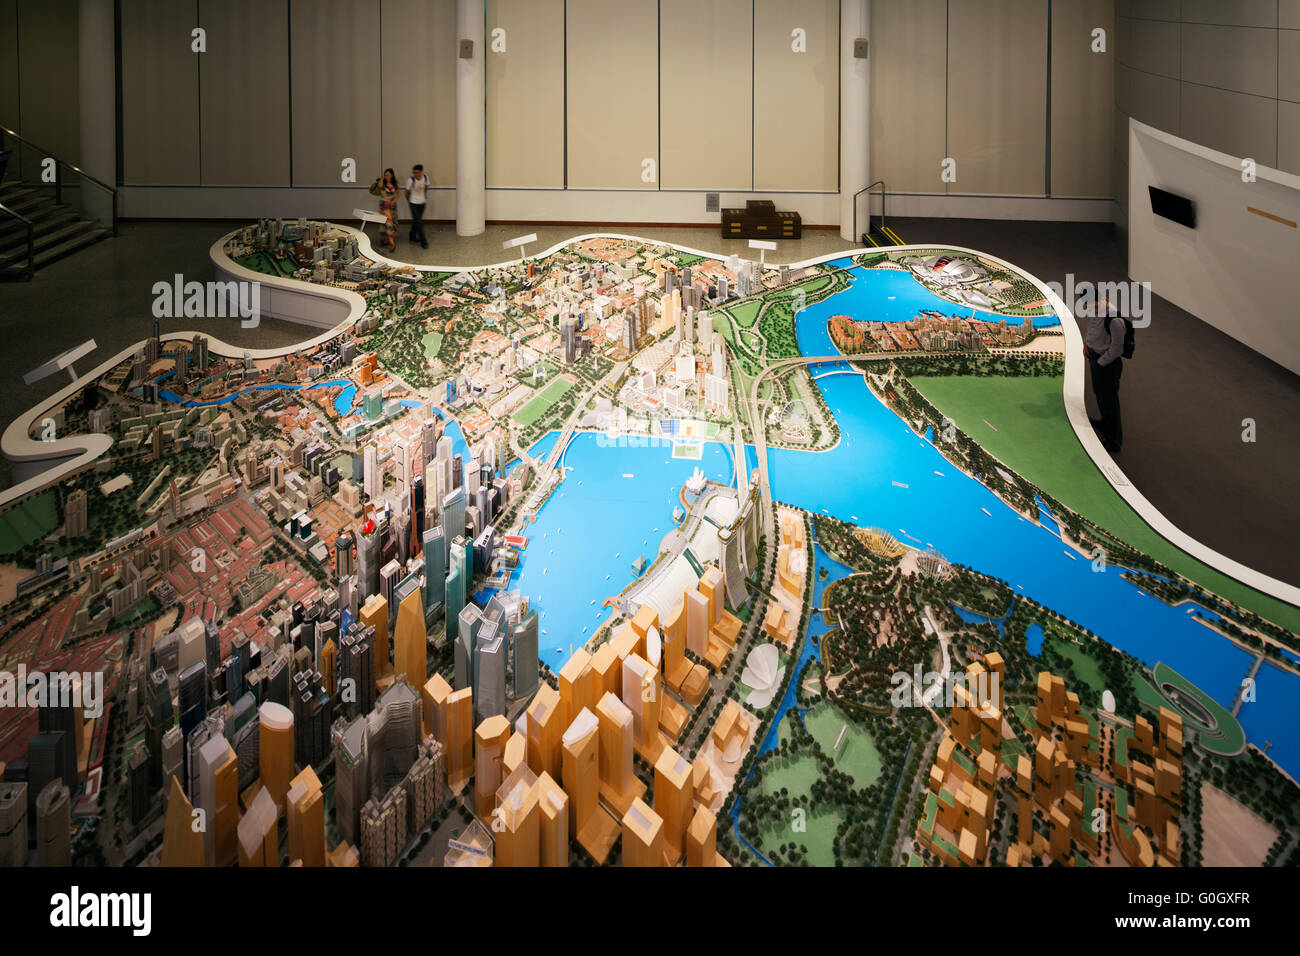 South East Asia, Singapore, City Planning scale model of Singapore Stock Photo